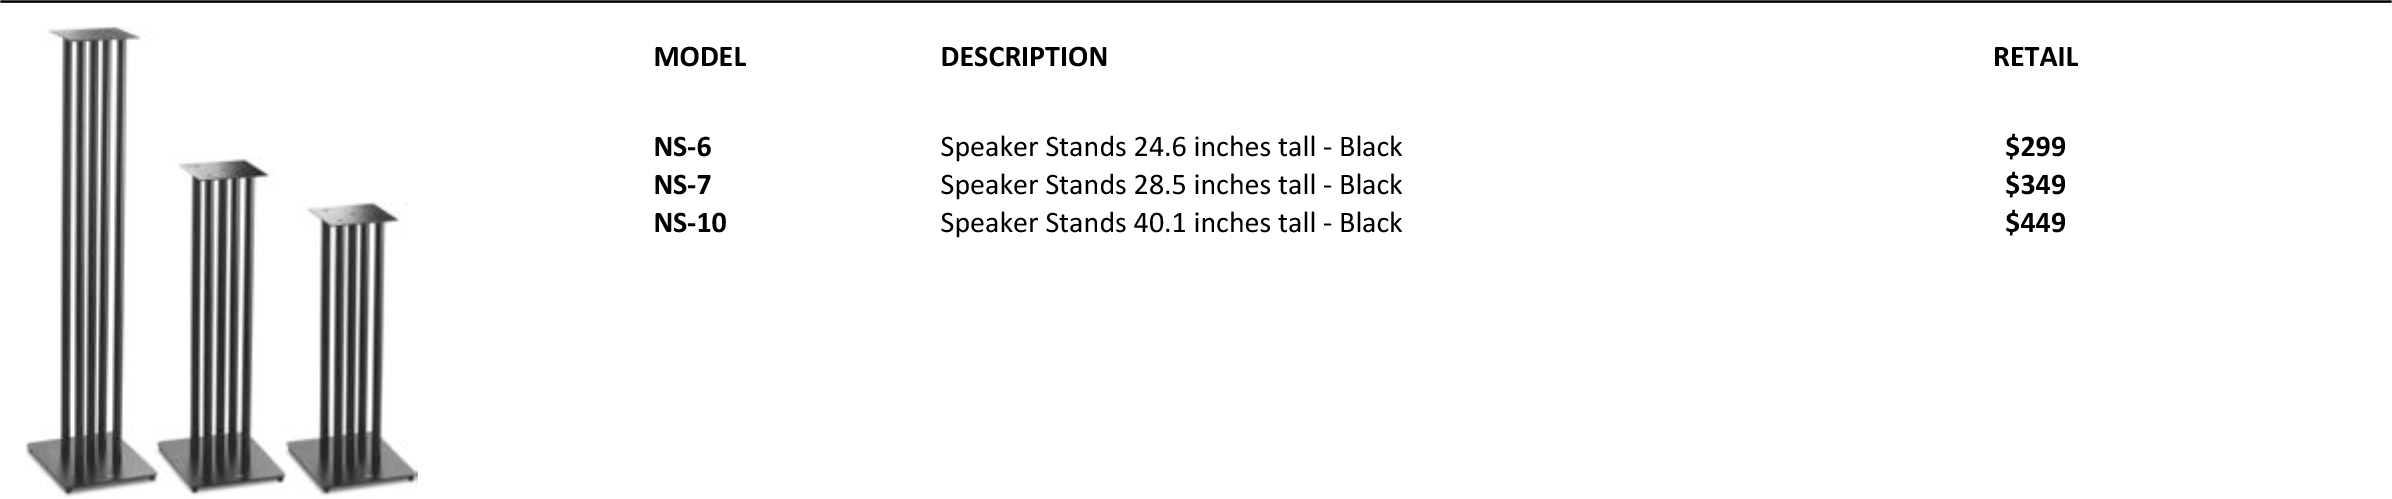 SolidSteel NS Series HiFi Speaker Stands